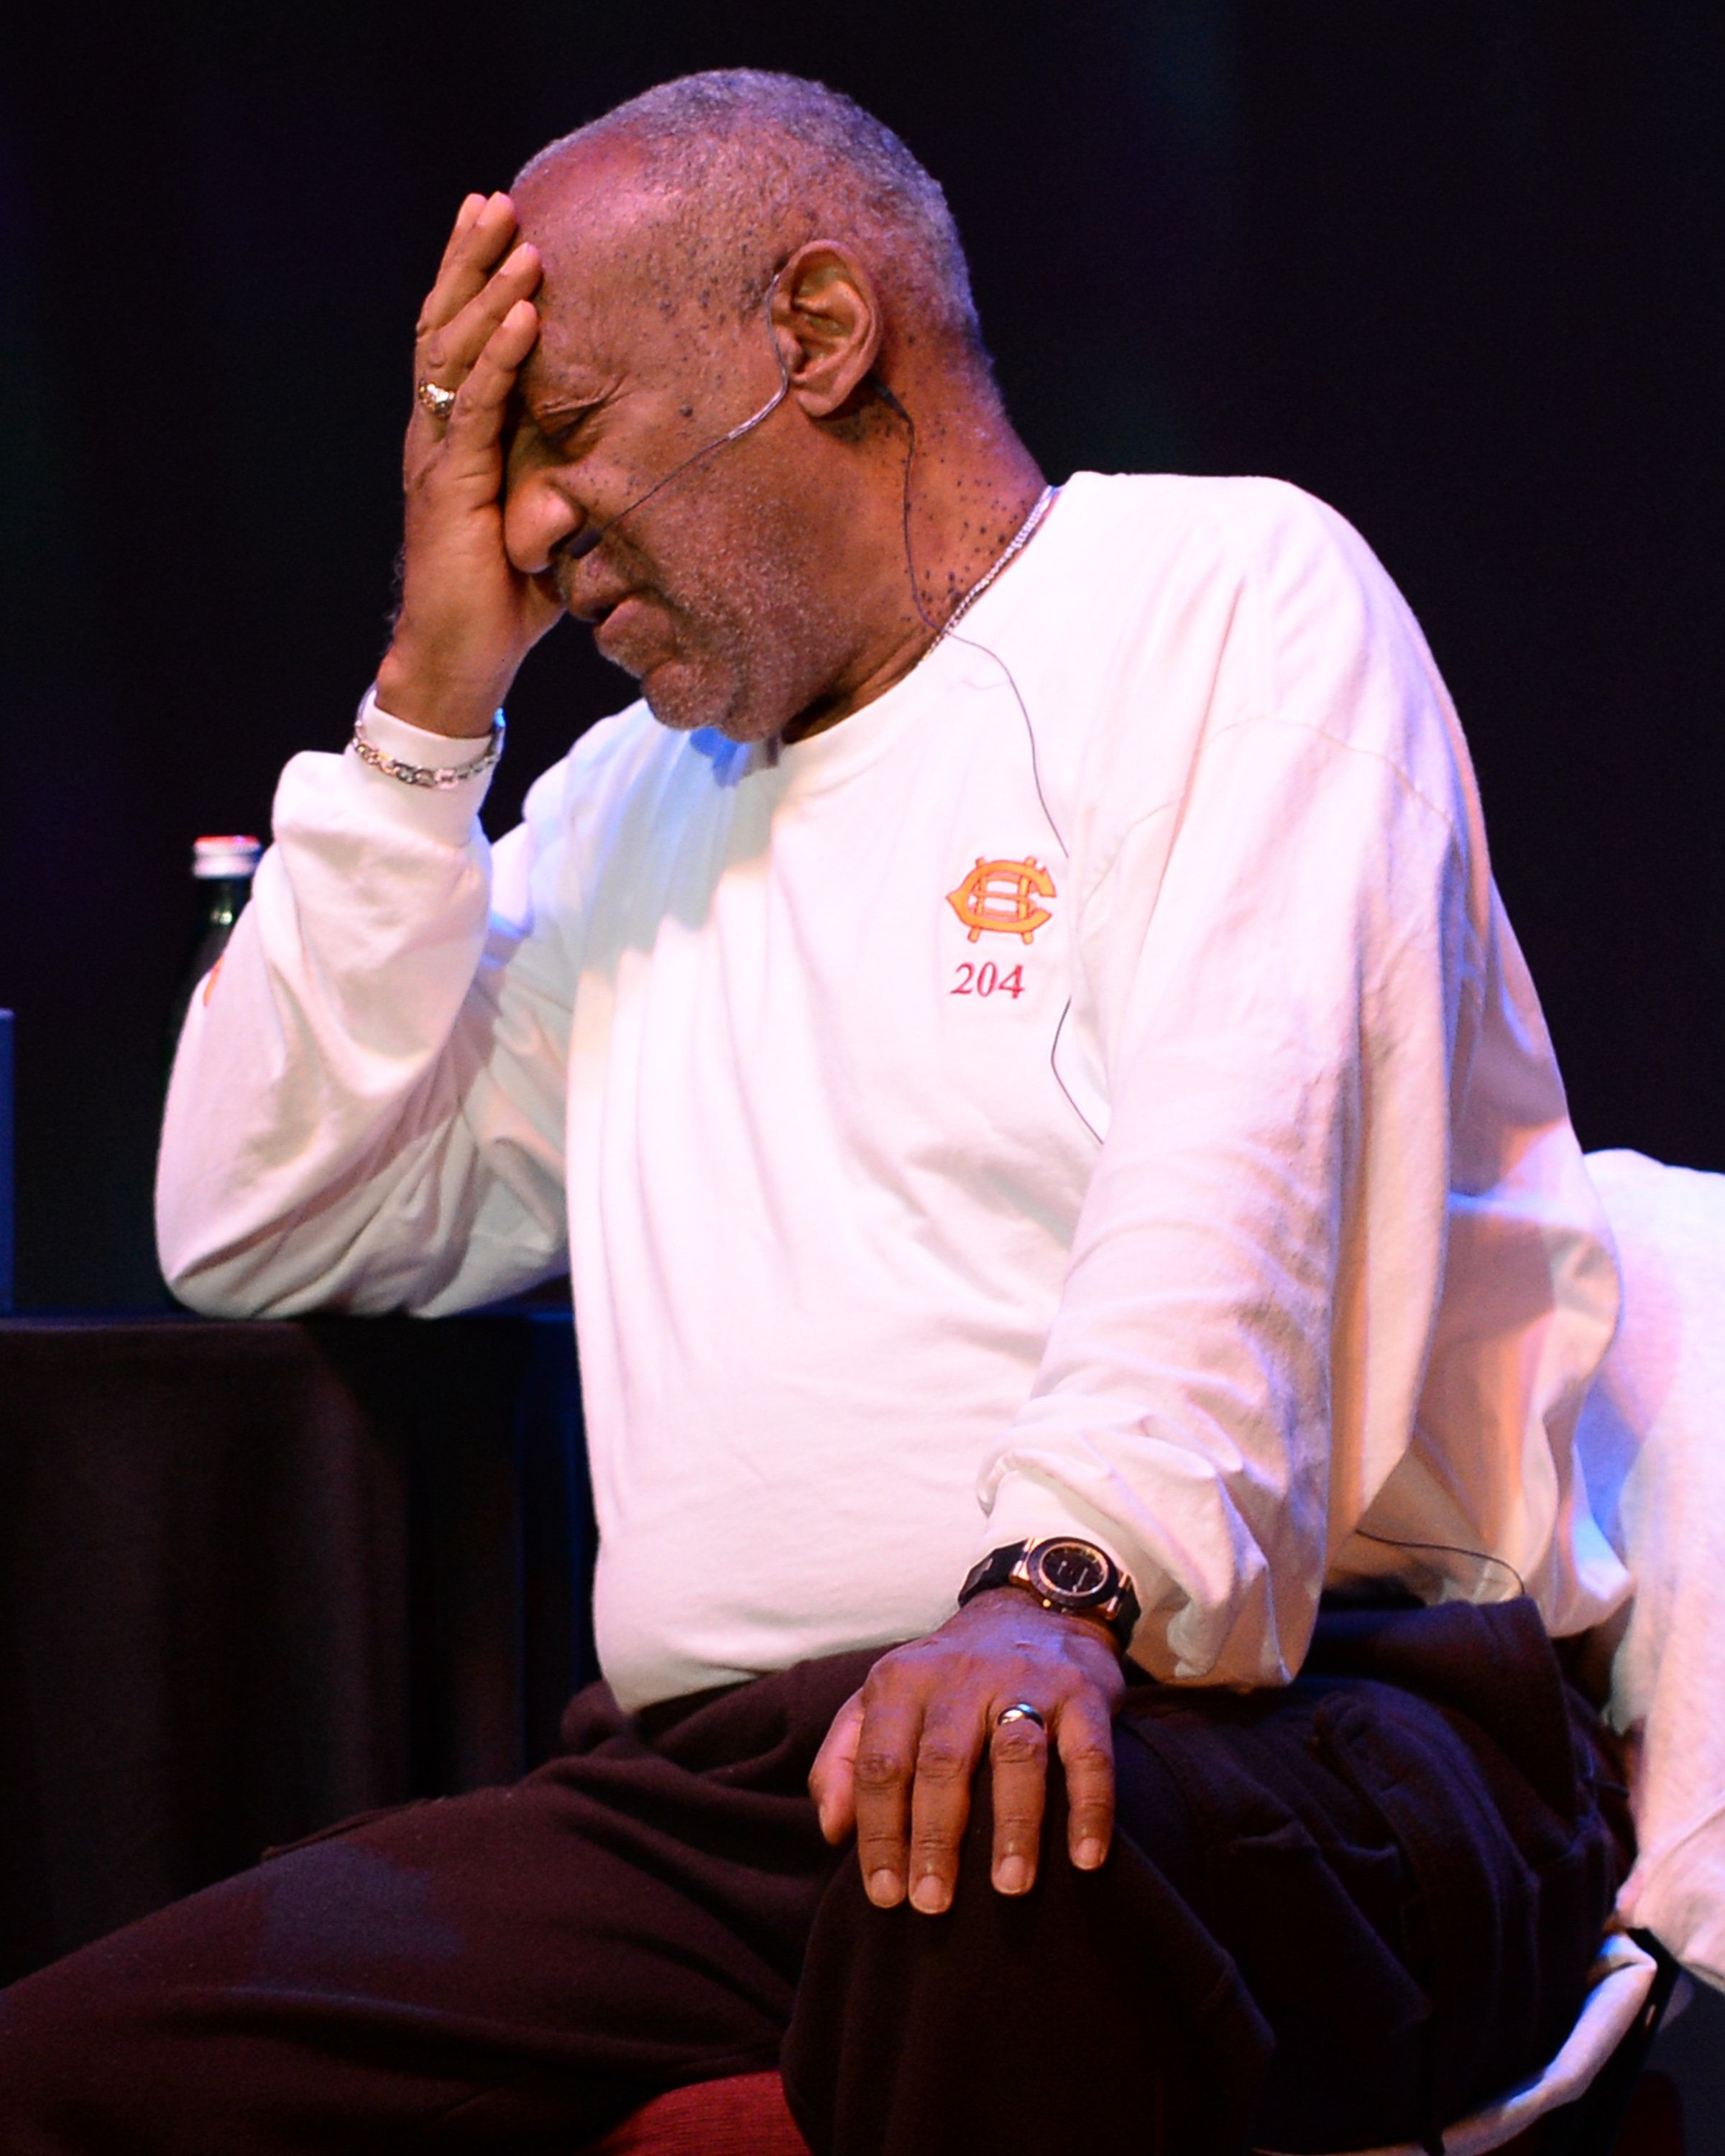 HOLLYWOOD, FL - MAY 12: Bill Cosby performs at Hard Rock Live! in the Seminole Hard Rock Hotel & Casino on May 12, 2013 in Hollywood, Florida. (Photo by Larry Marano/Getty Images)